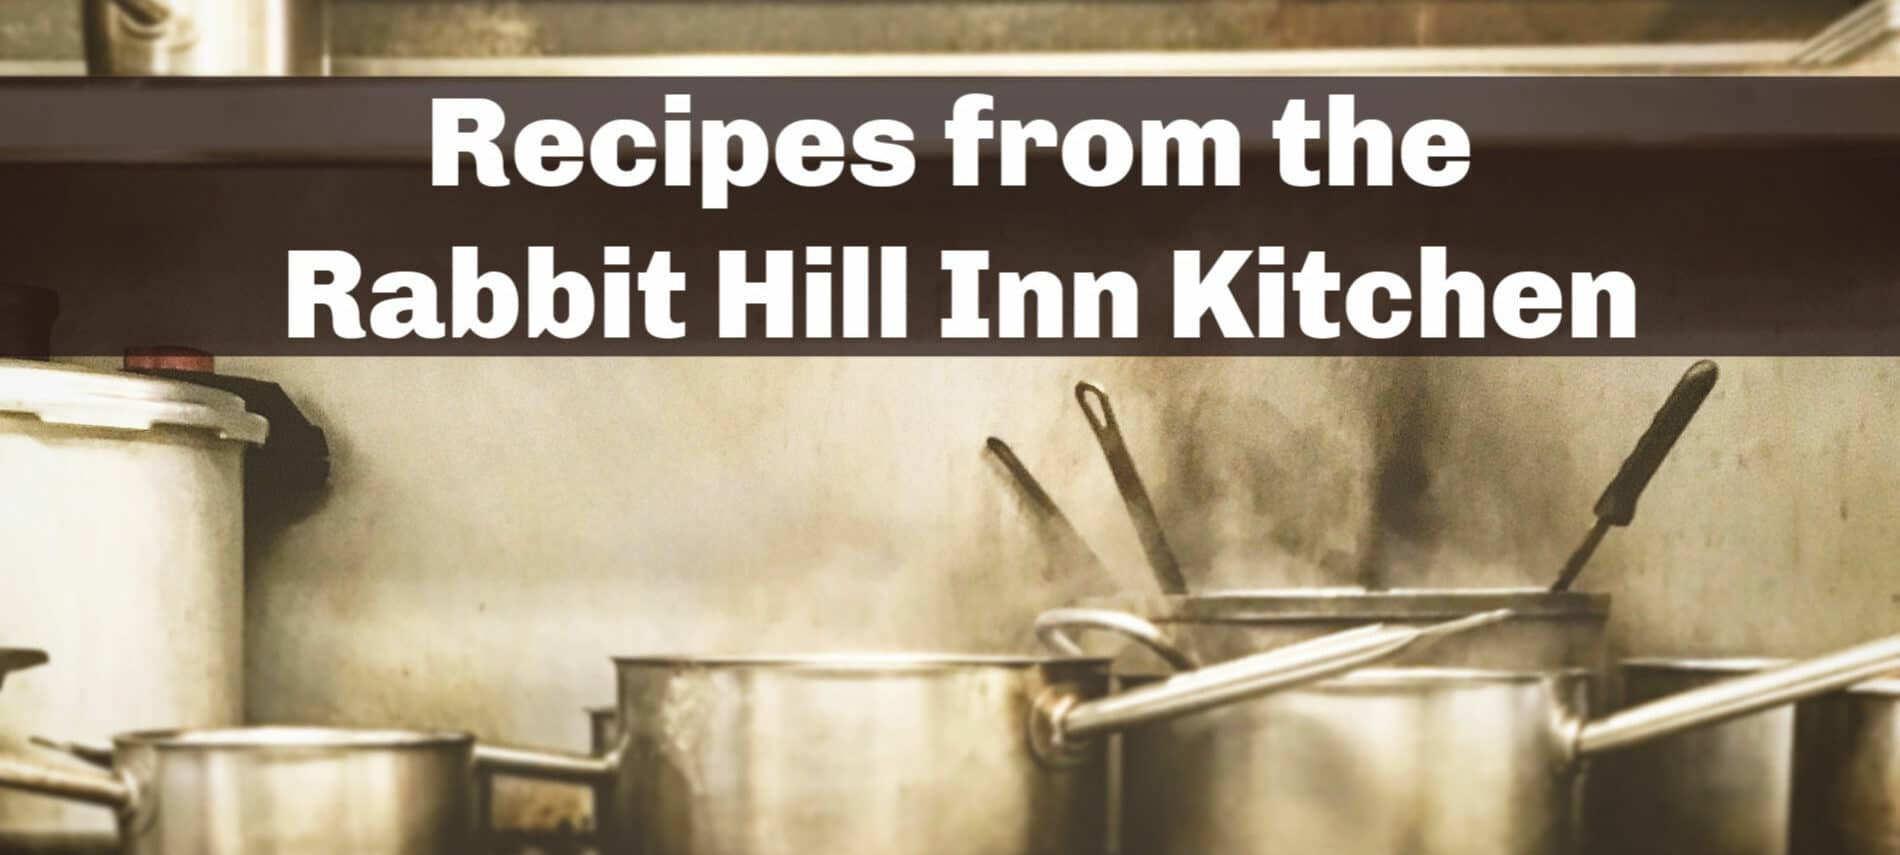 steam coming from pots and pans on the stove at Rabbit Hill Inn